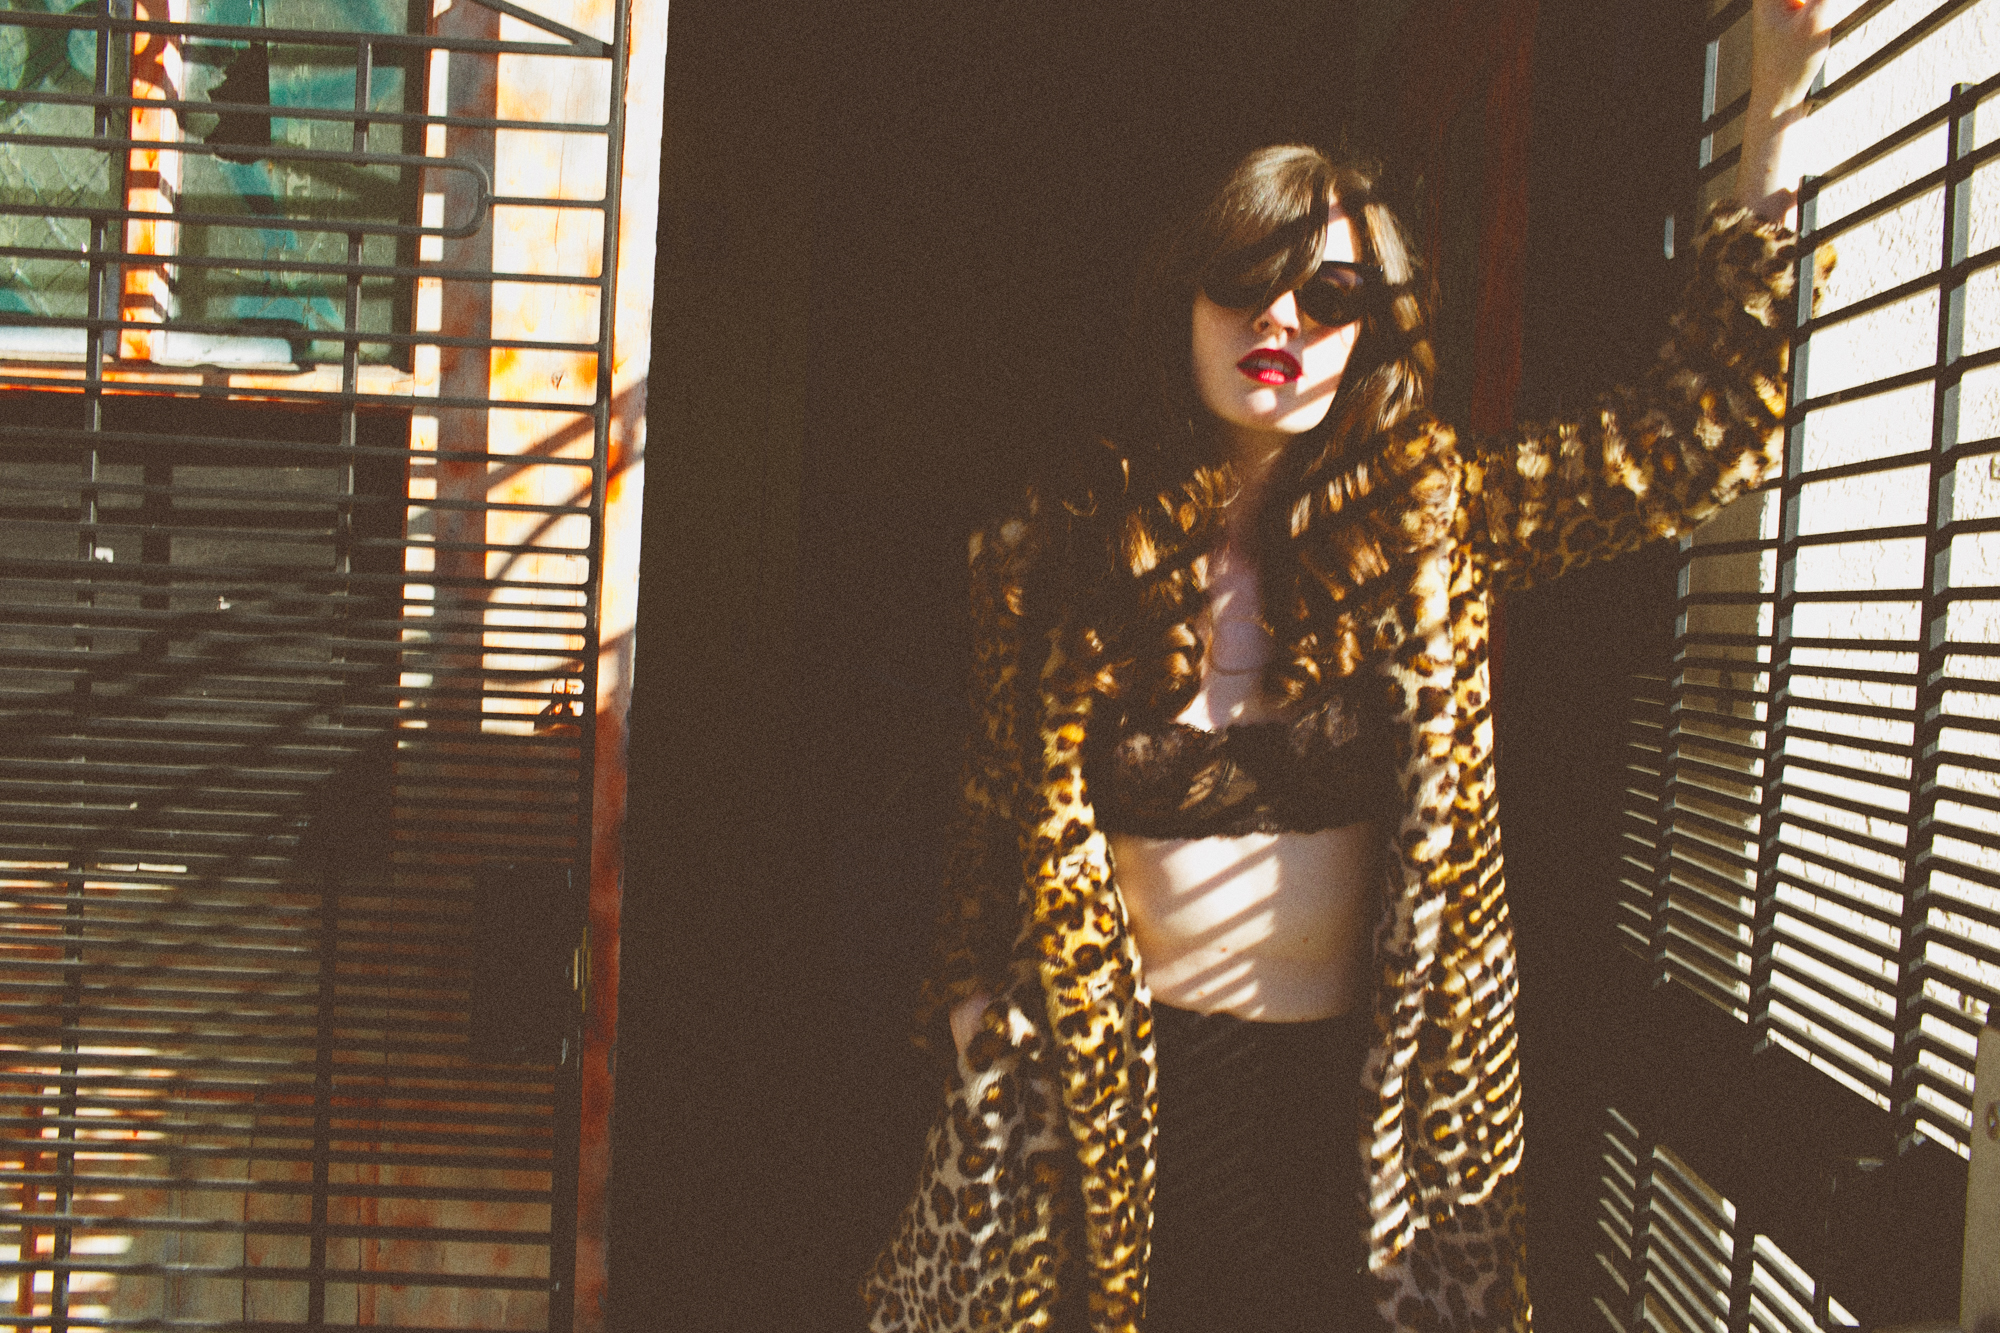 Music & Fashion Photographer Jennifer Skog photographs indie-electronic pop duo CATHEDRALS